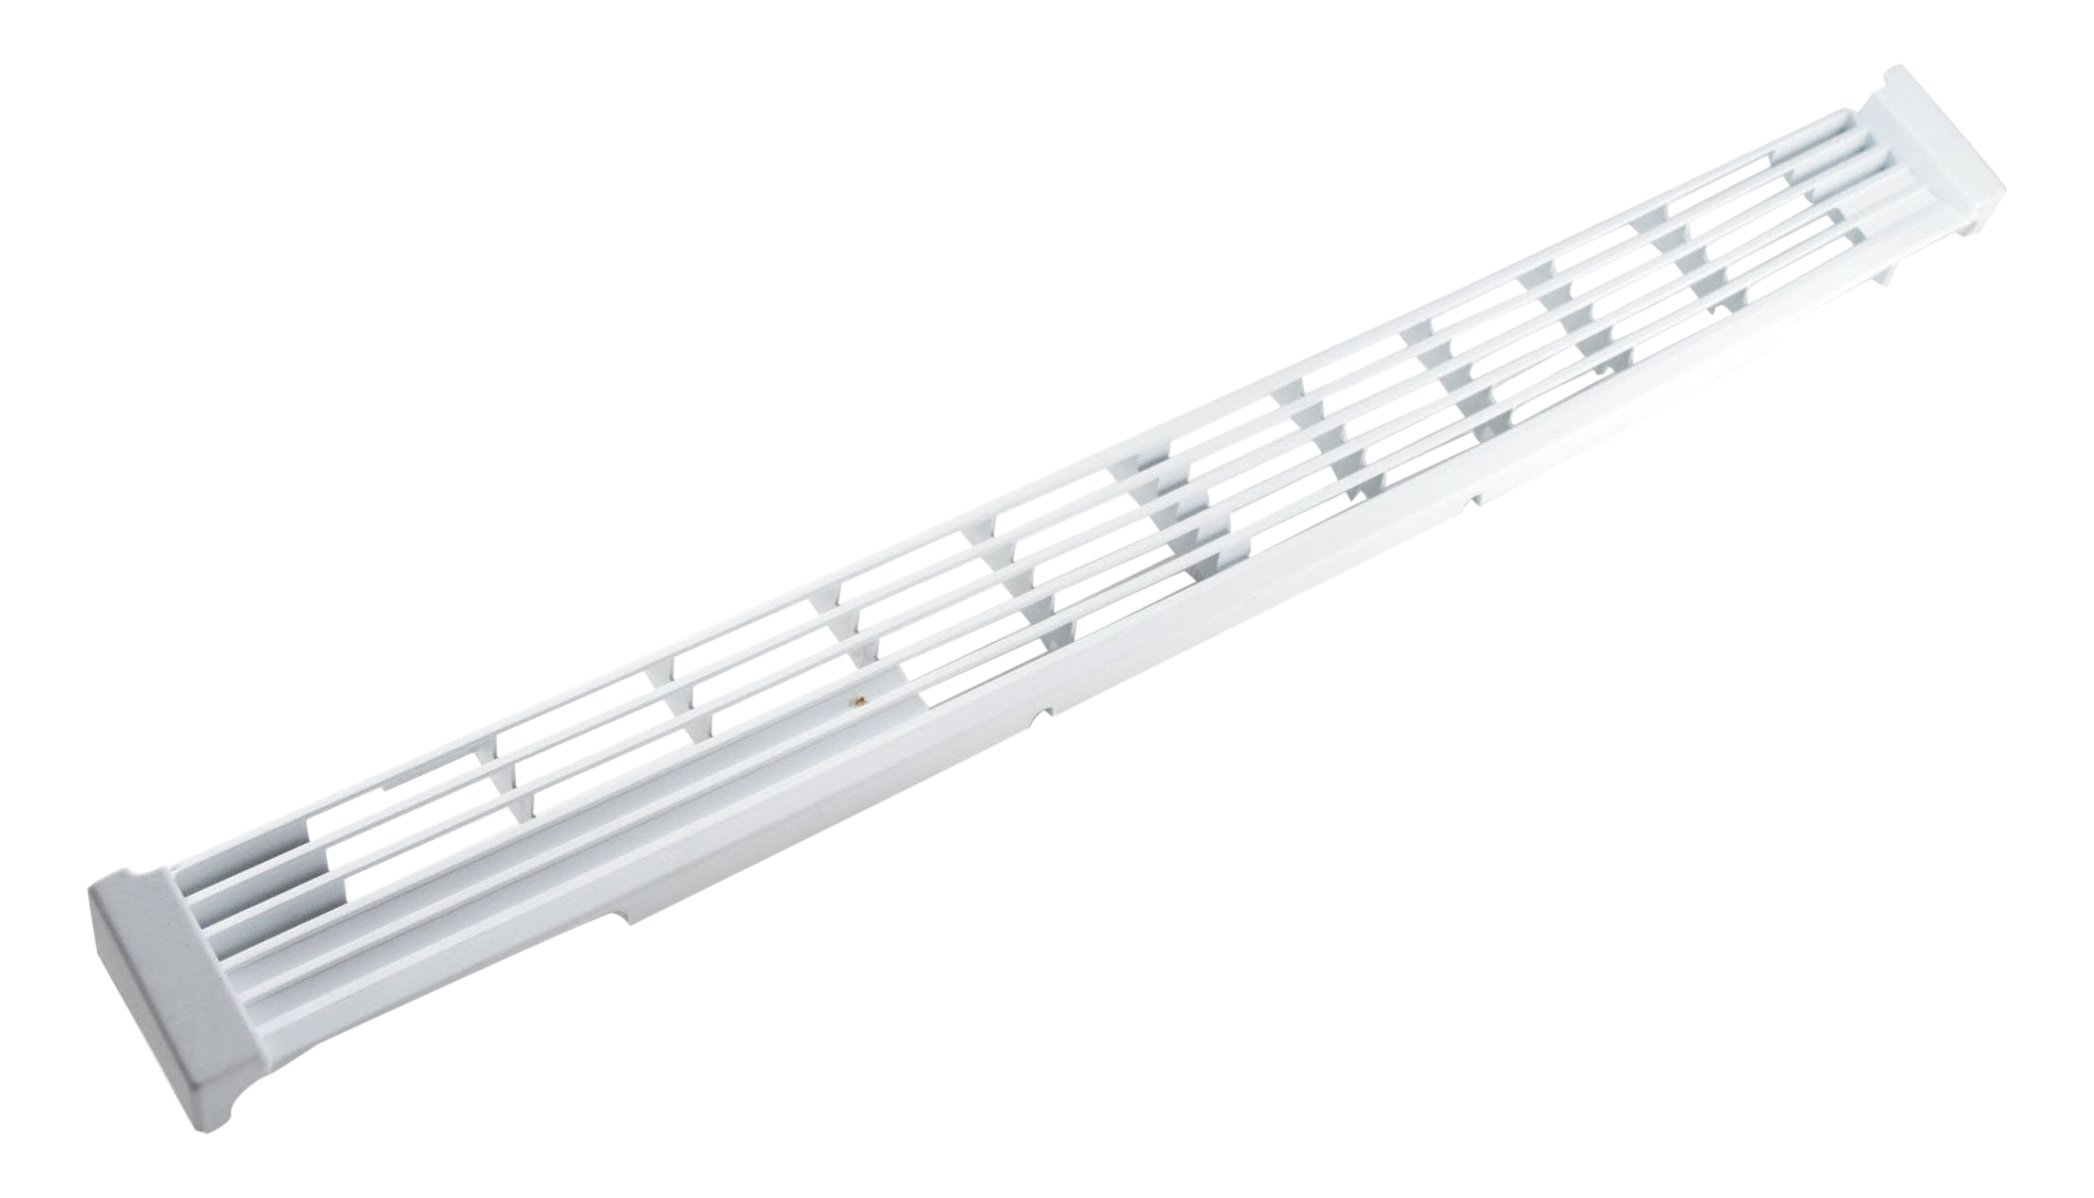 Hotpoint WR74X217L Refrigerator Parts Grille Base